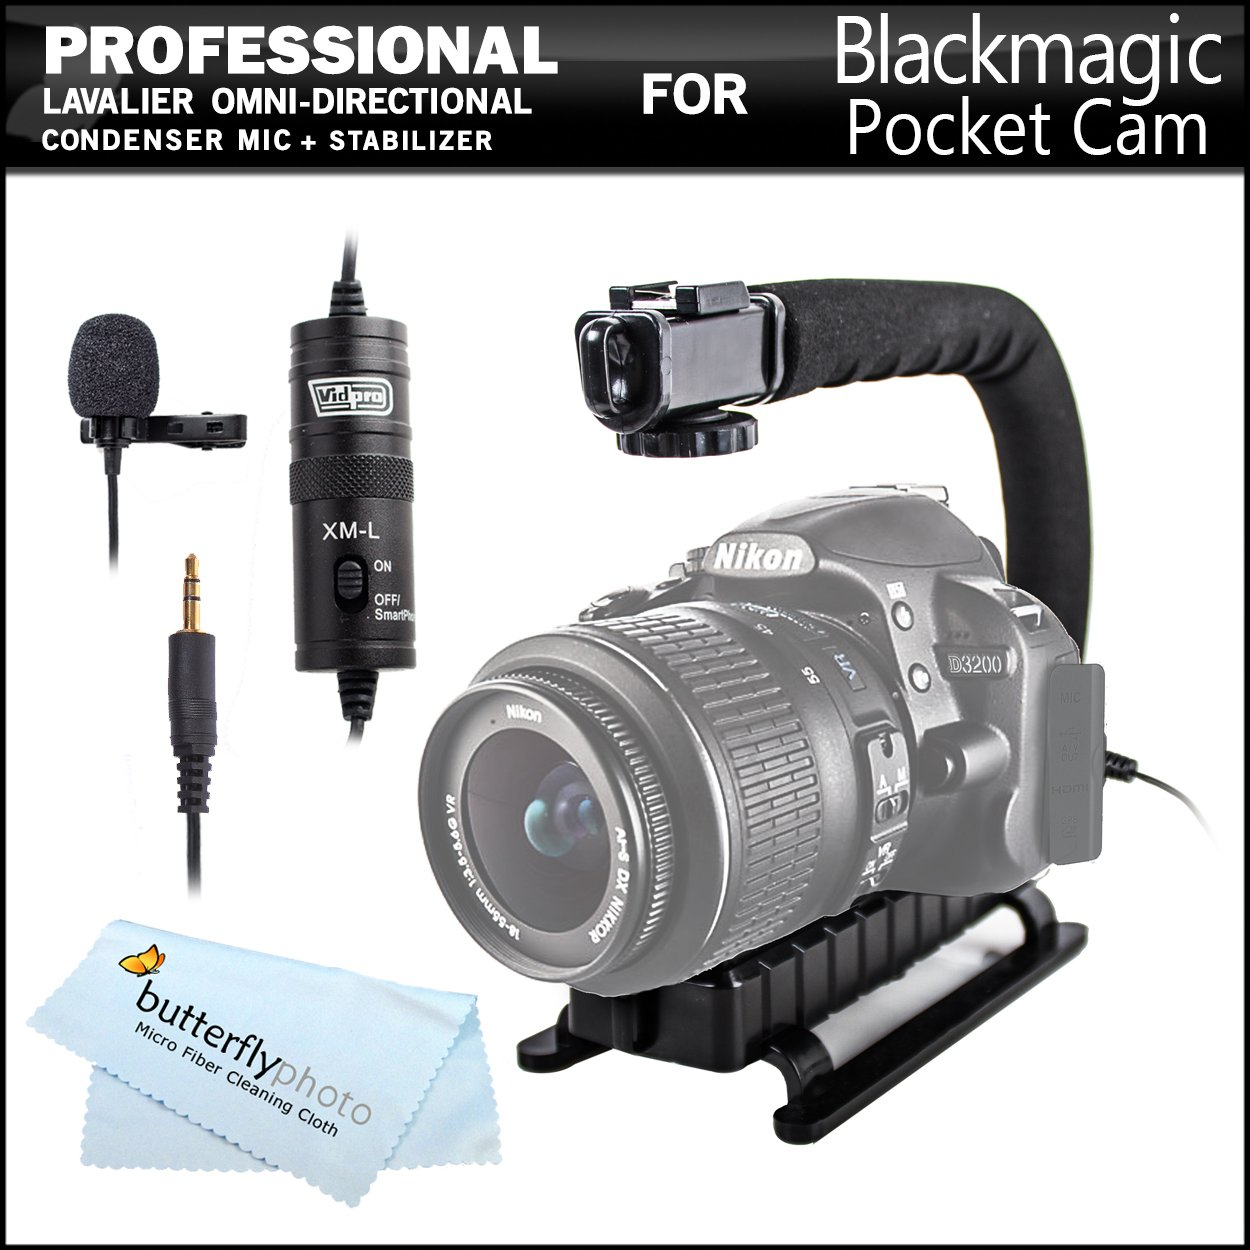 ButterflyPhoto Professional Lavalier (lapel) Omni-directional Condenser Microphone - 20' Audio Cable + Video Stabilizer Kit For Blackmagic Pocket Cinema Camera with Micro Four Thirds Lens Mount